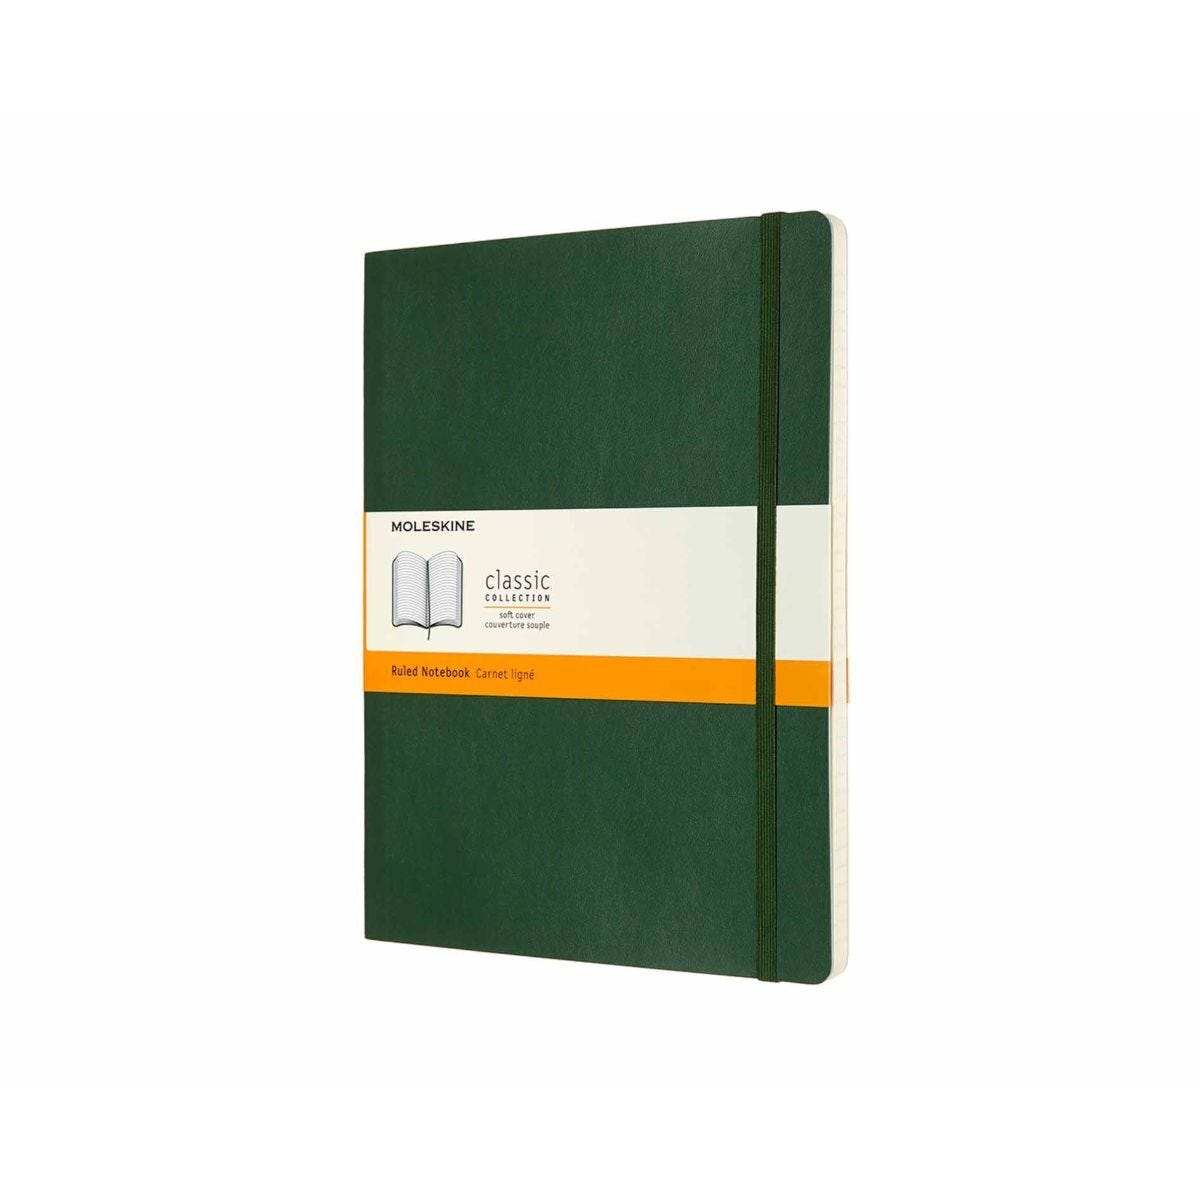 Moleskine Notebook Soft Cover Extra Large Ruled Myrtle Green